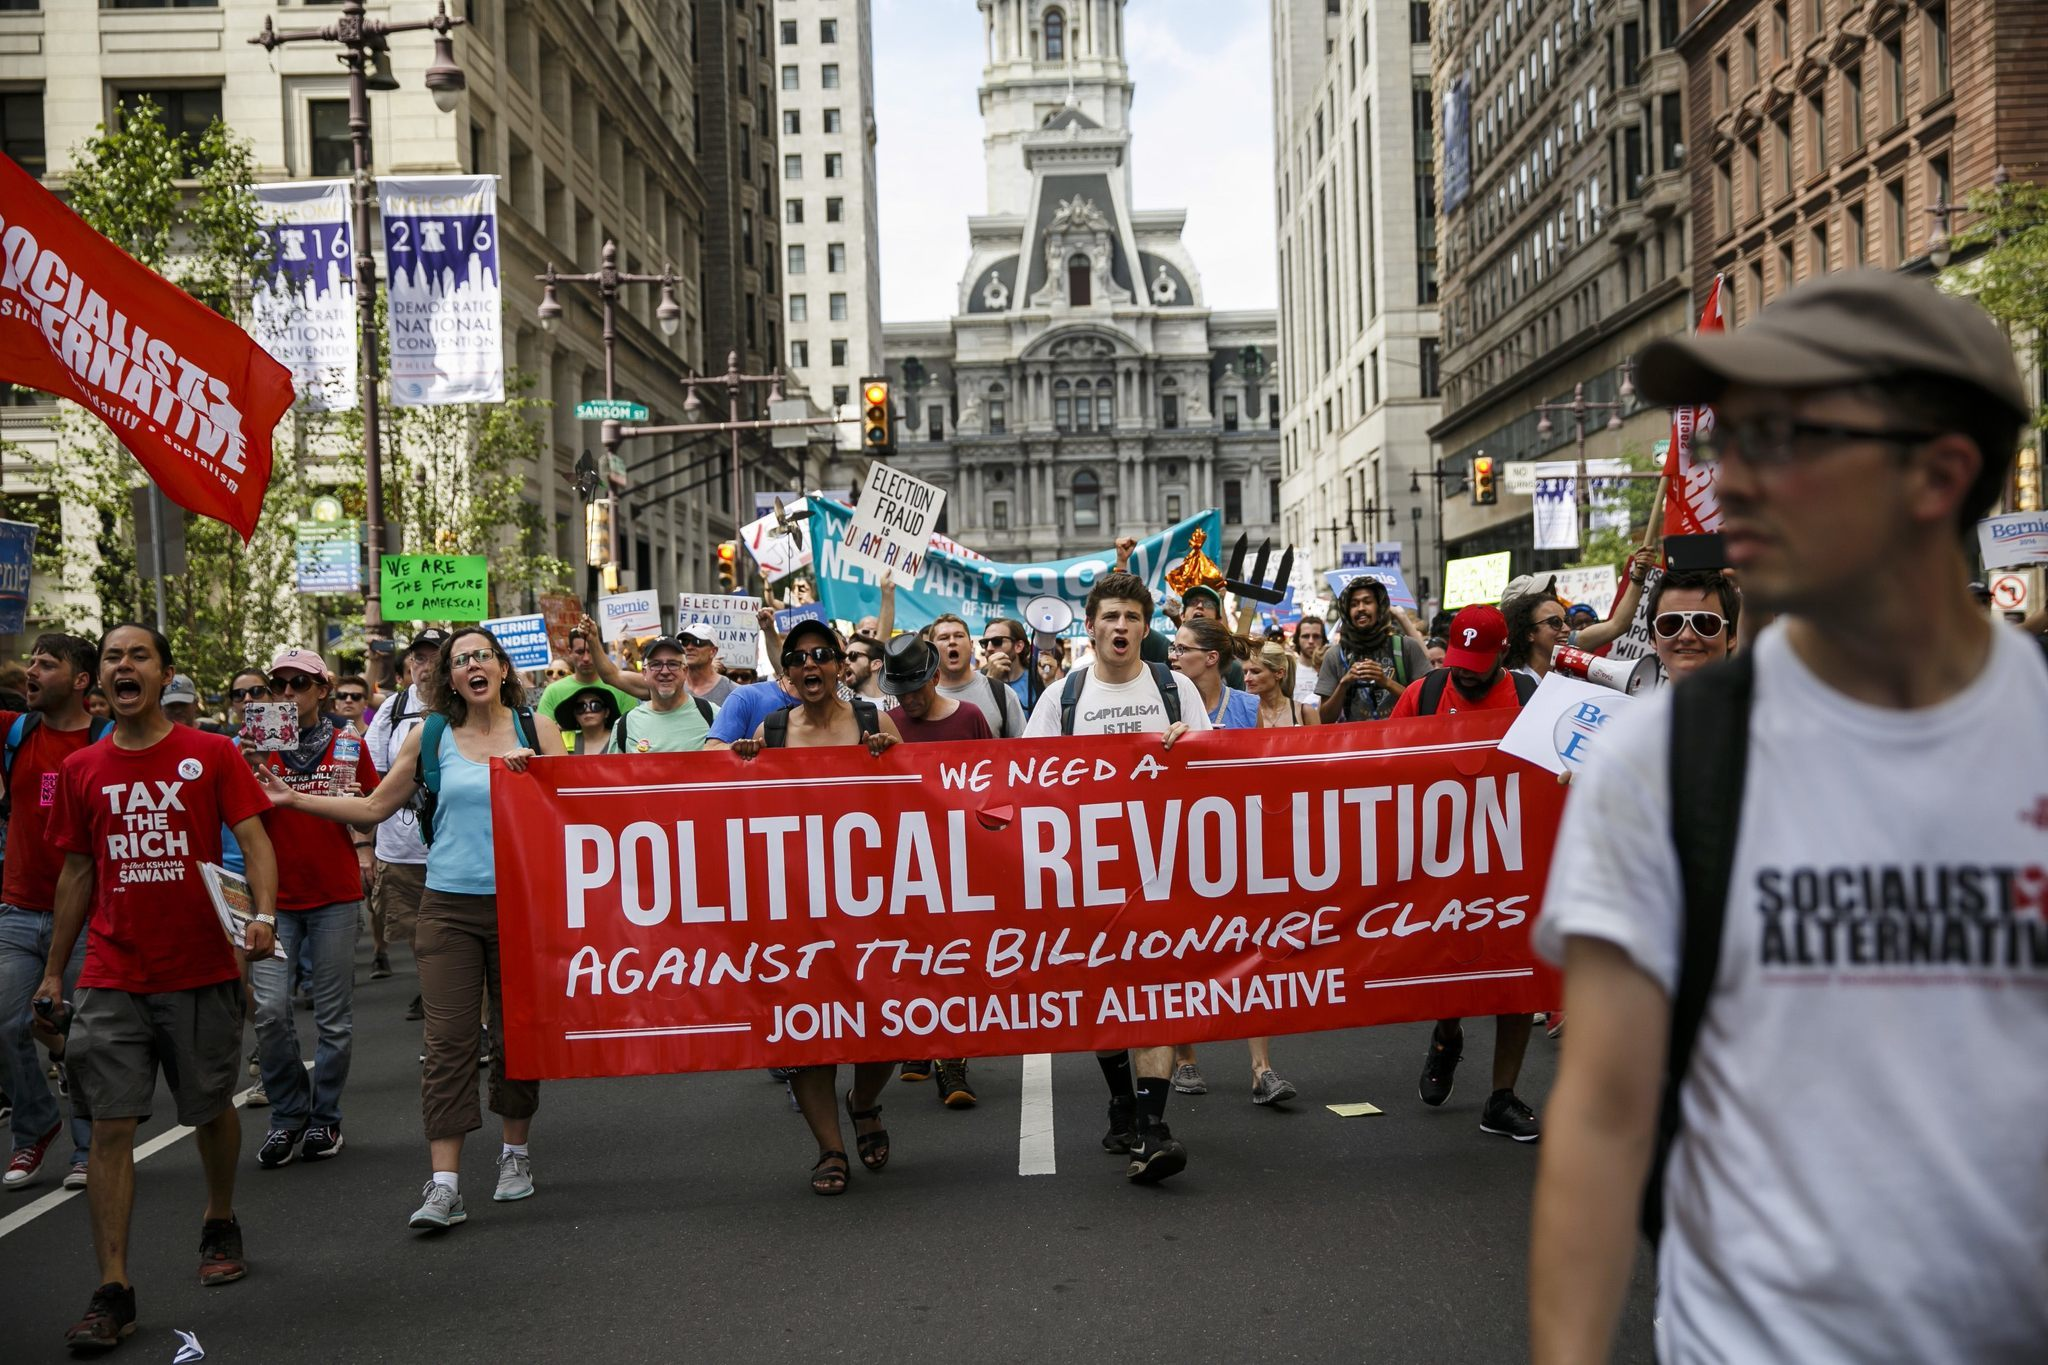 Bernie Sanders supporters march down Broad Street in Philadelphia on Sunday.